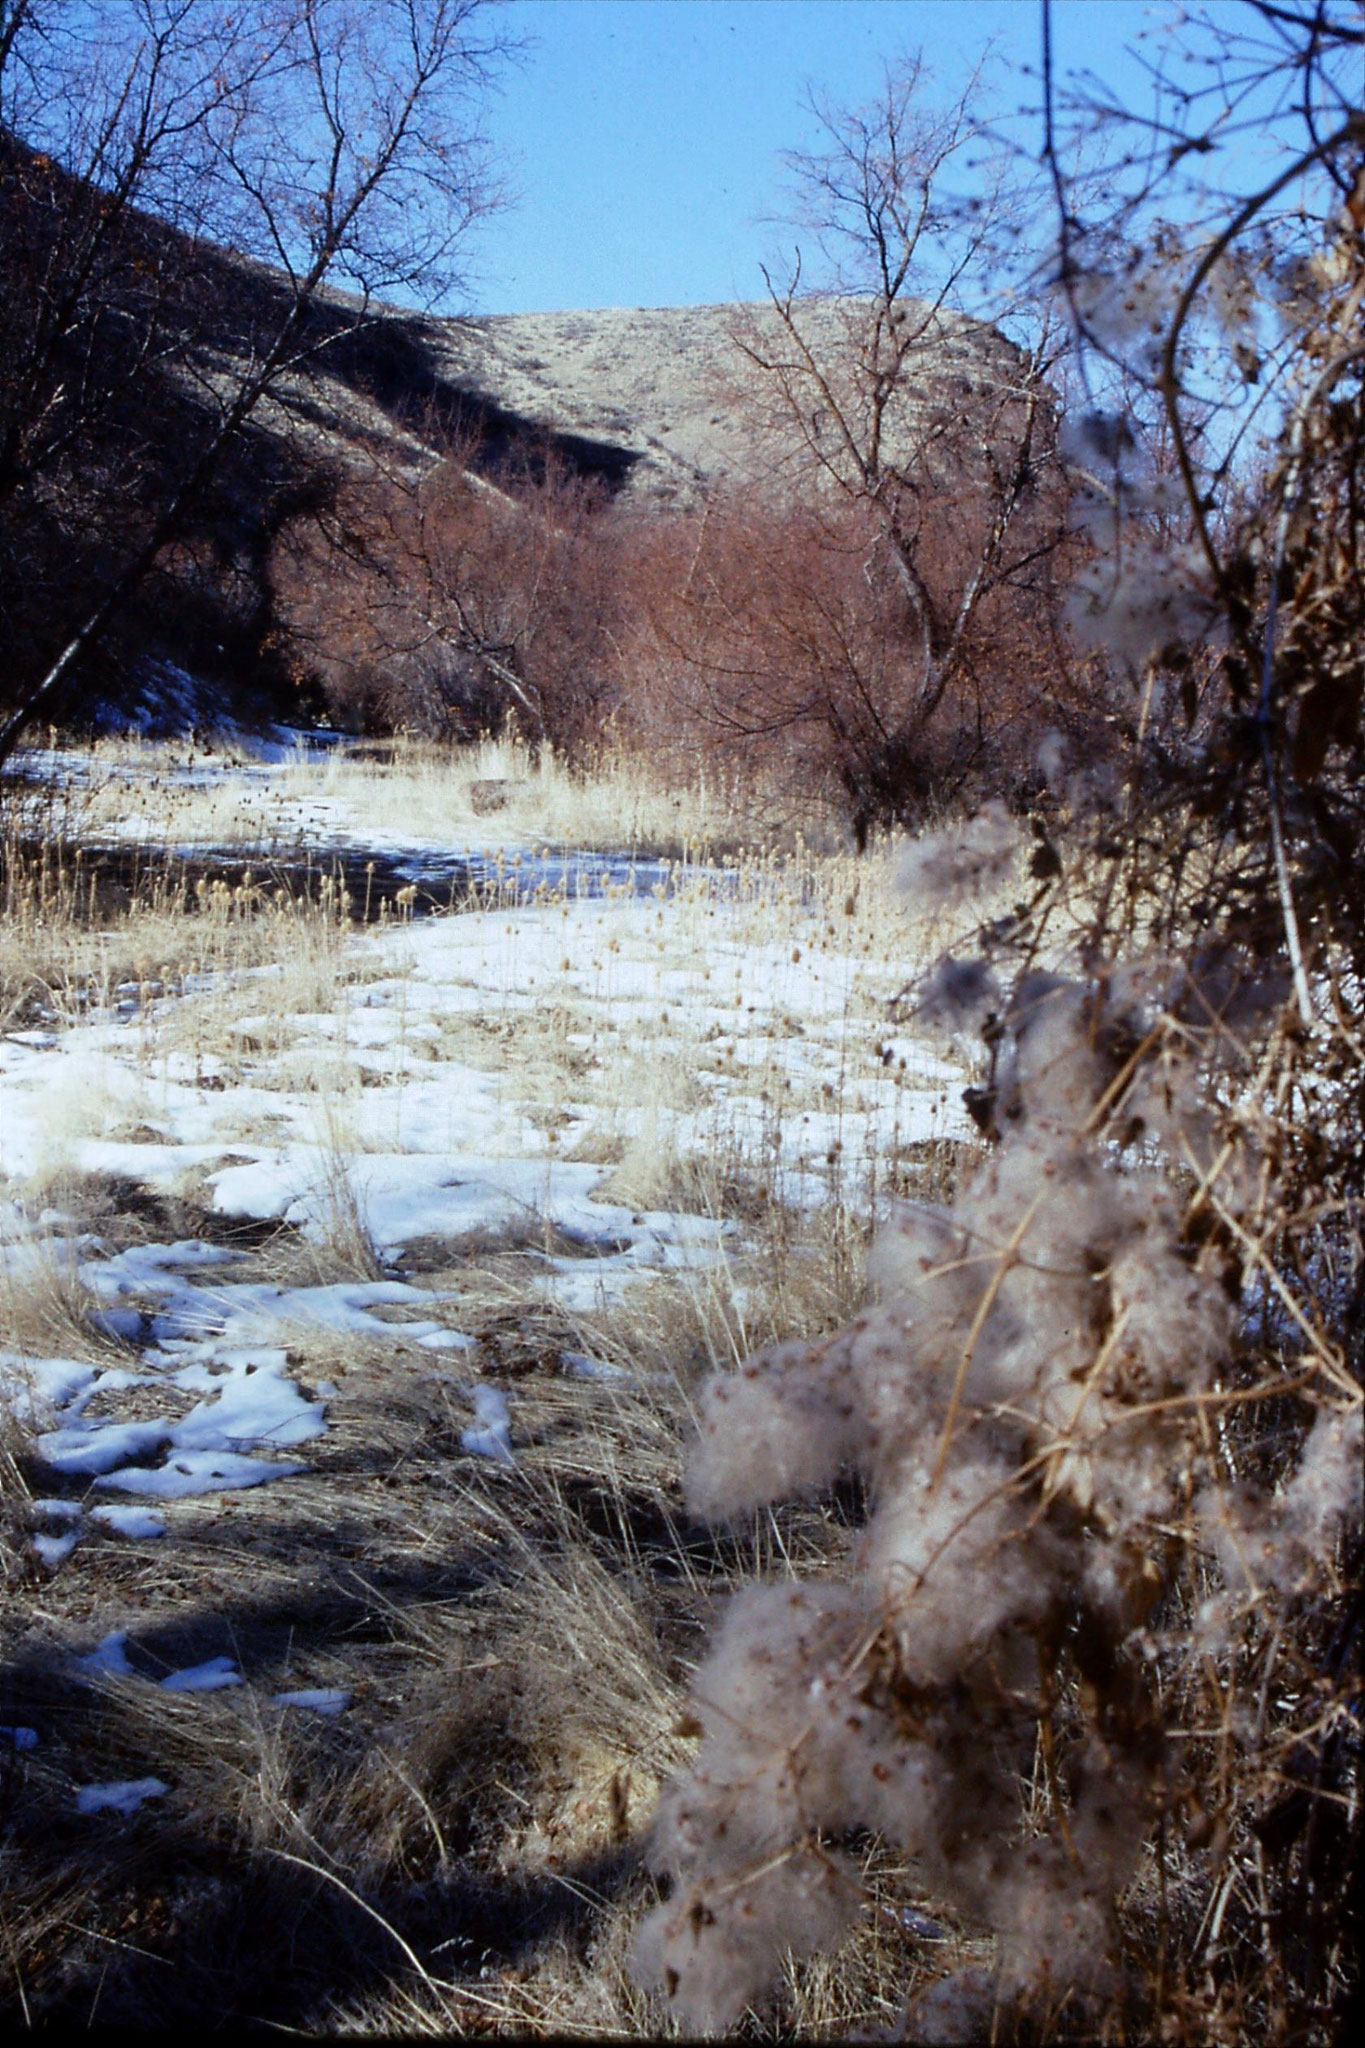 20/1/1991: 16: Rock Creek Canyon